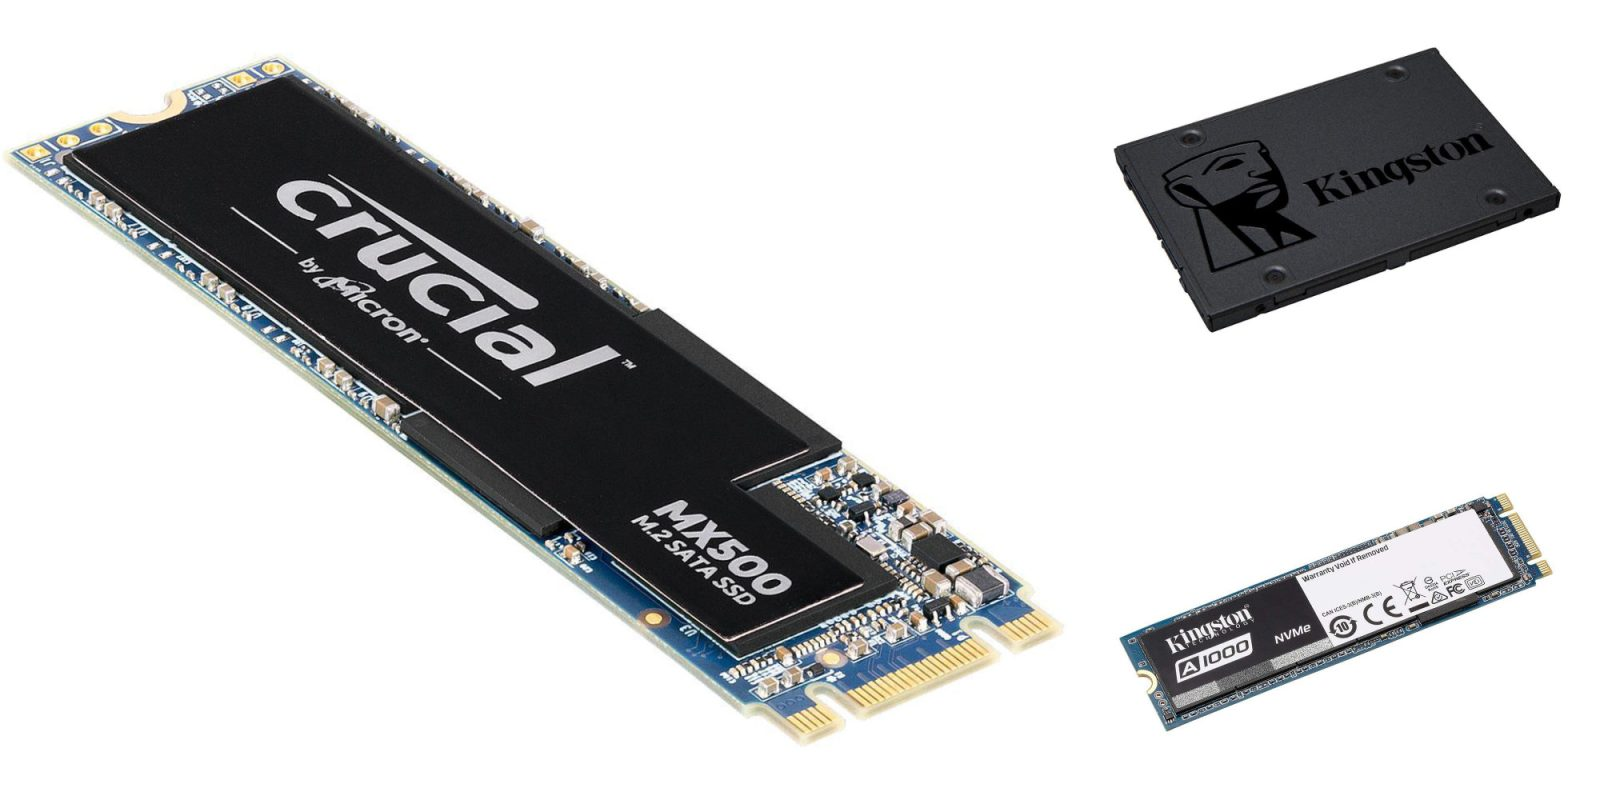 Boost PC performance w/ Crucial's 500GB NVMe SSD at $60 (Reg. $70), more from $27